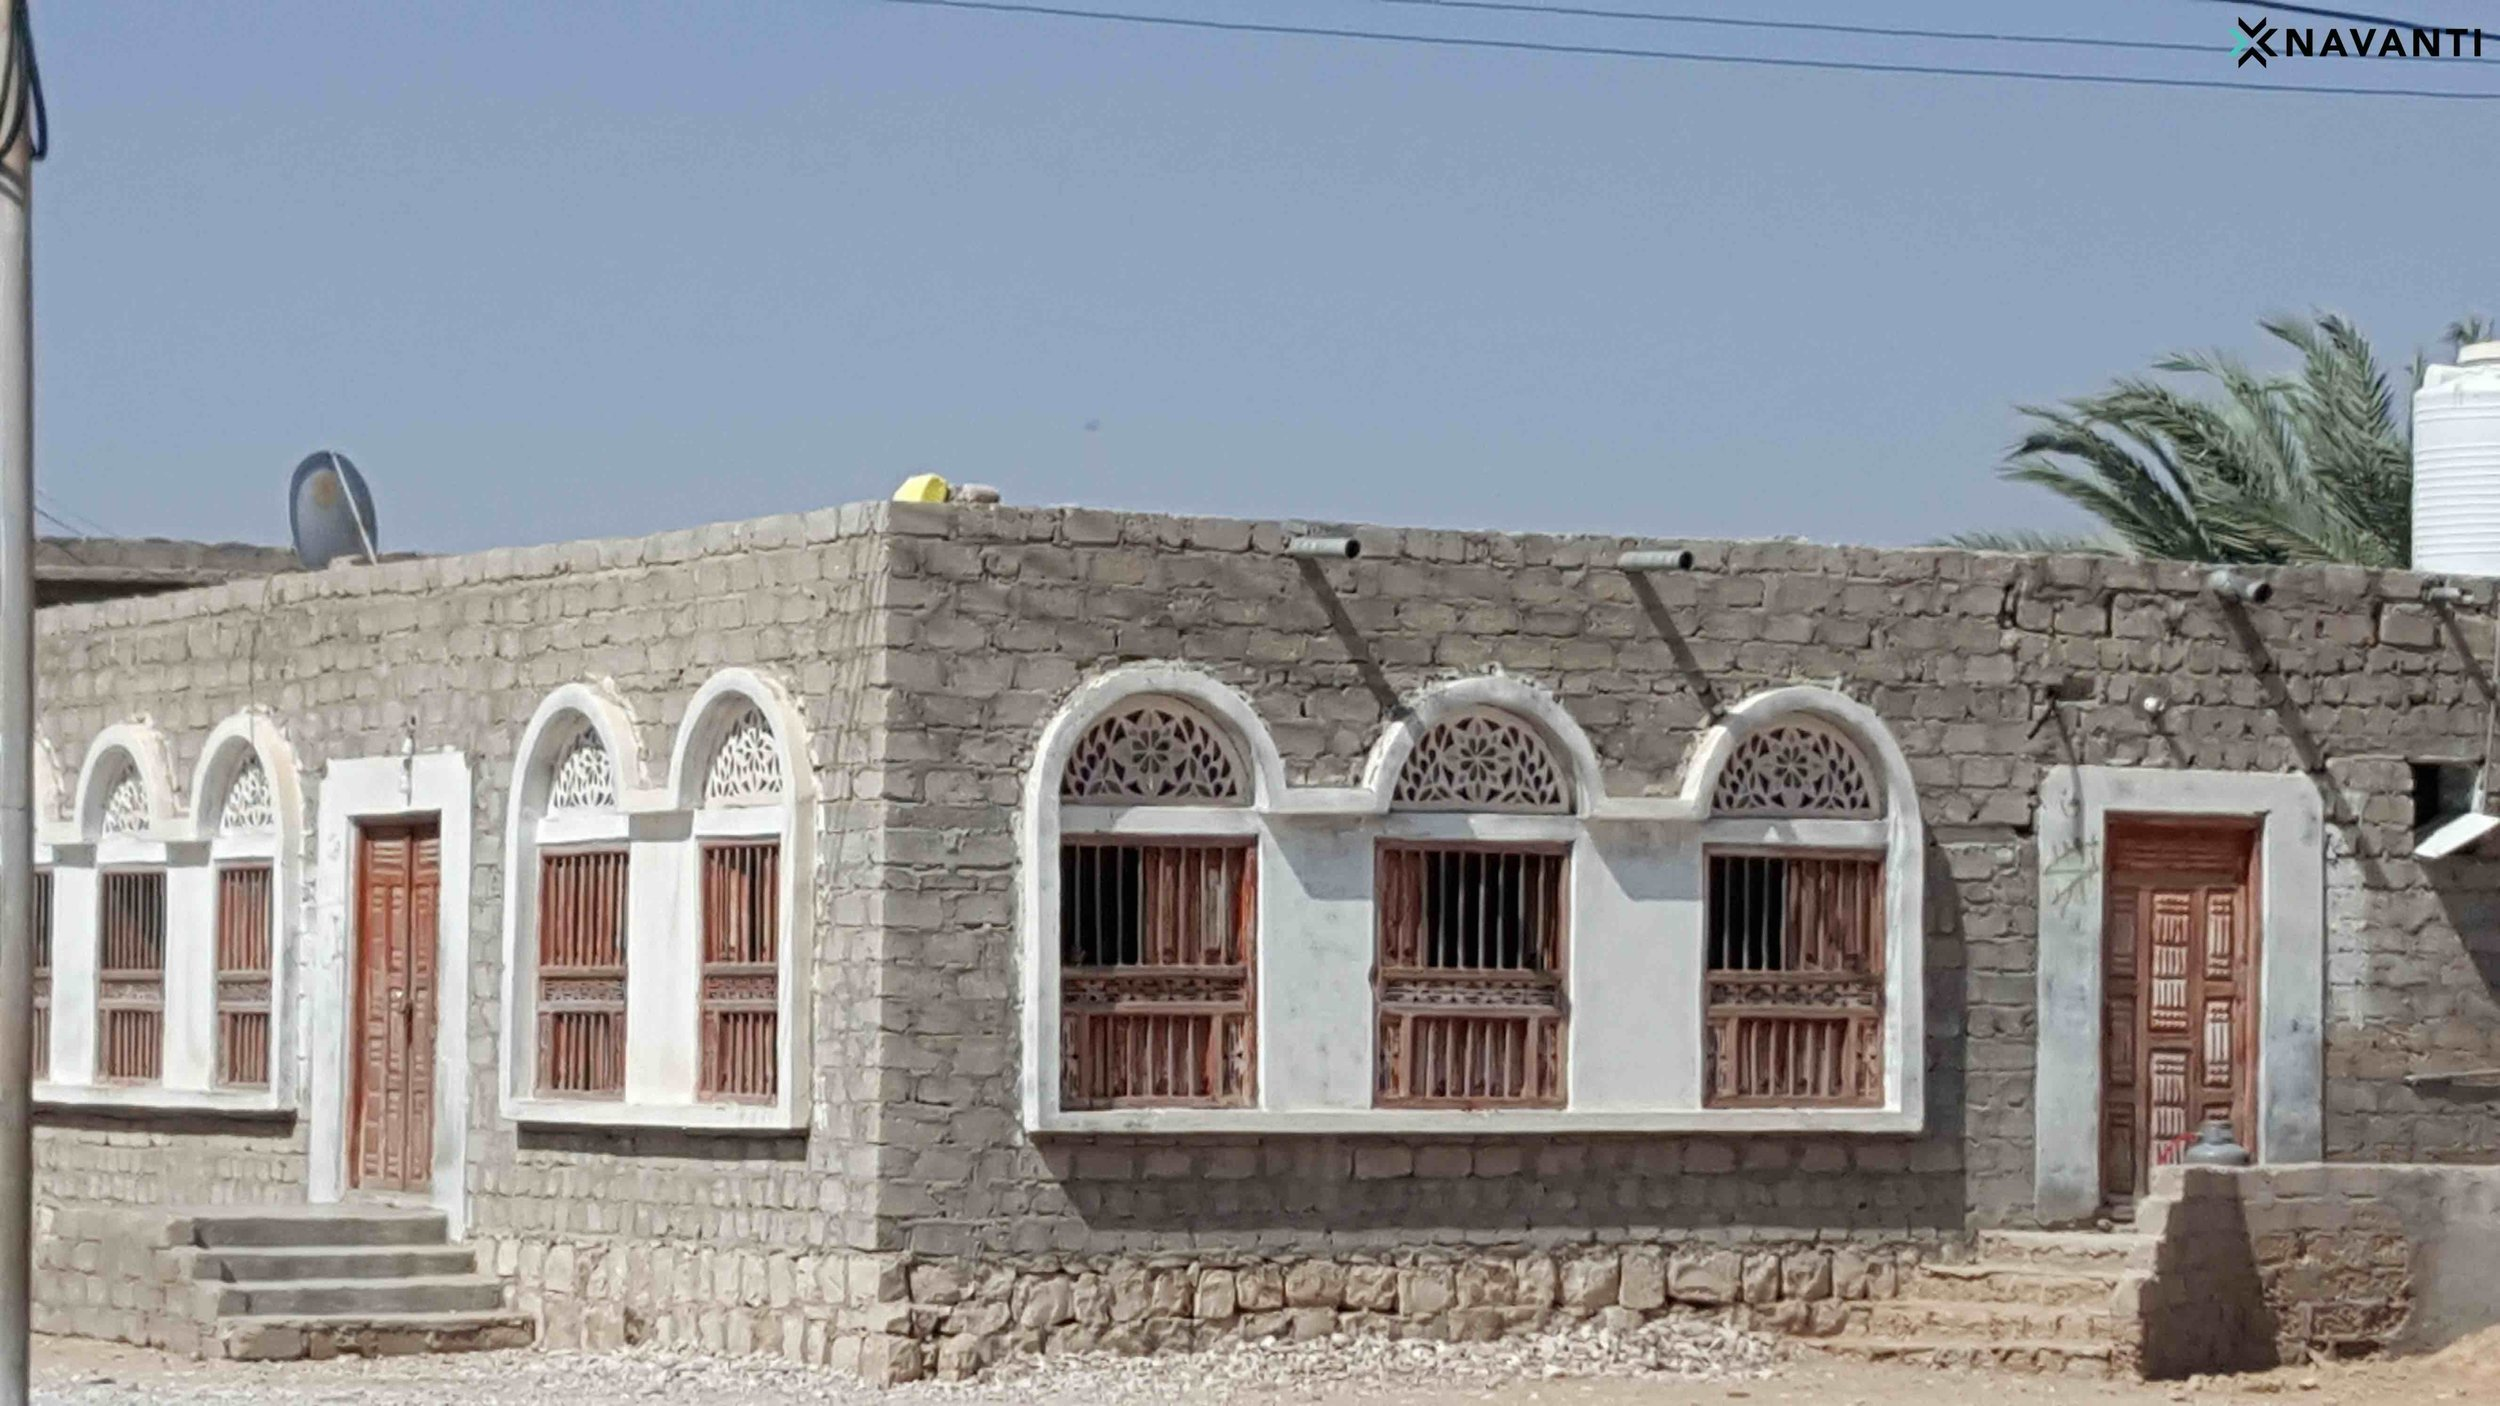 Traditional houses in Sayhut, al-Mahra. Source: Navanti.